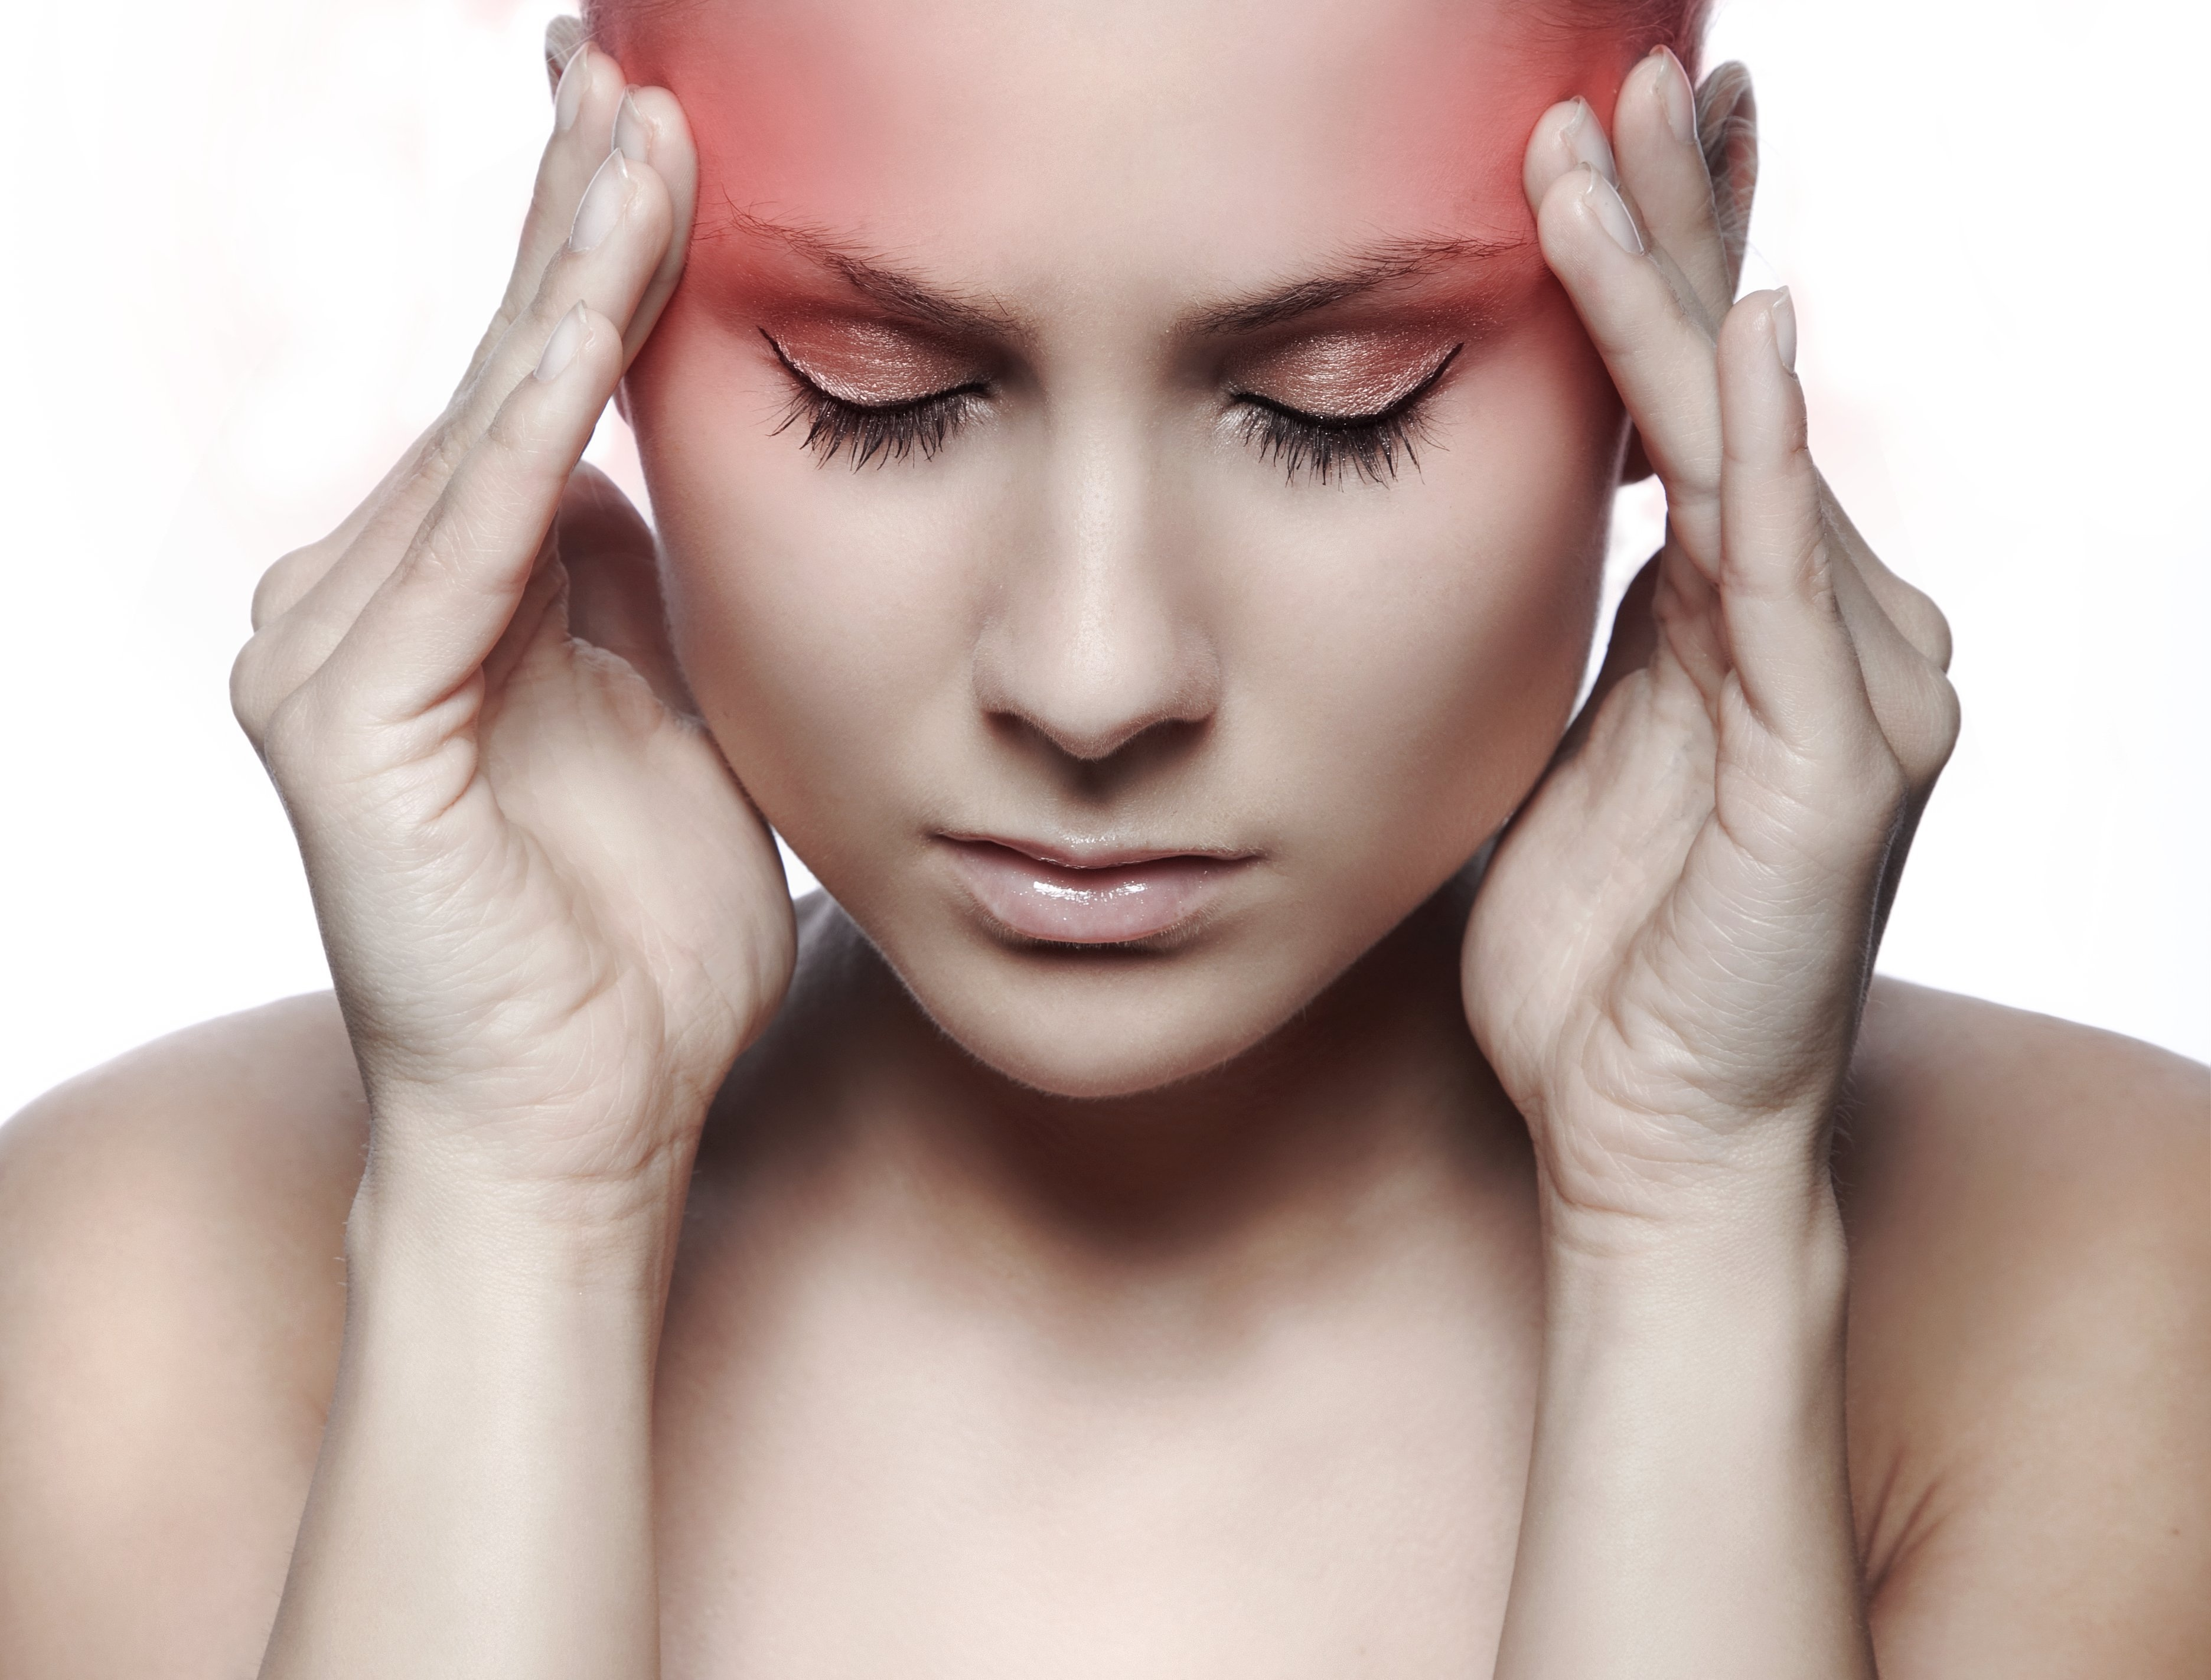 Chiropractic care for BPPV